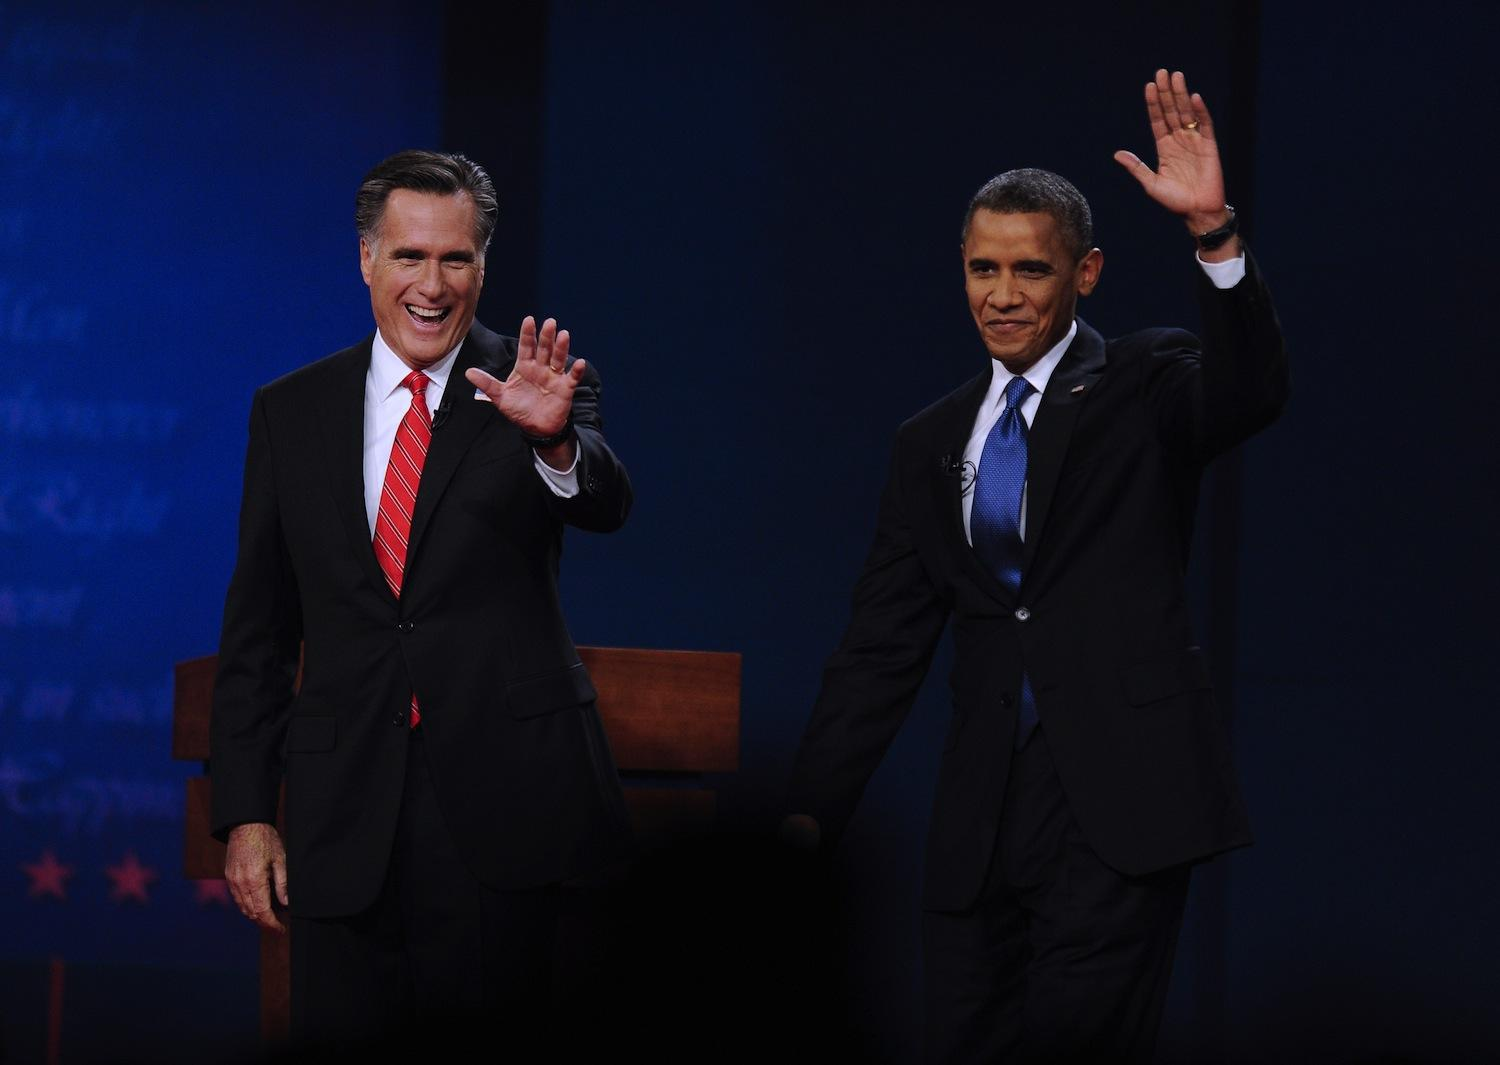 Republican presidential candidate Mitt Romney, left, and U.S. President Barack Obama attend the first presidential debate at Denver University on Wednesday, October 3, 2012, in Denver, Colorado. (Zhang Jun/Xinhua/Zuma Press/MCT)